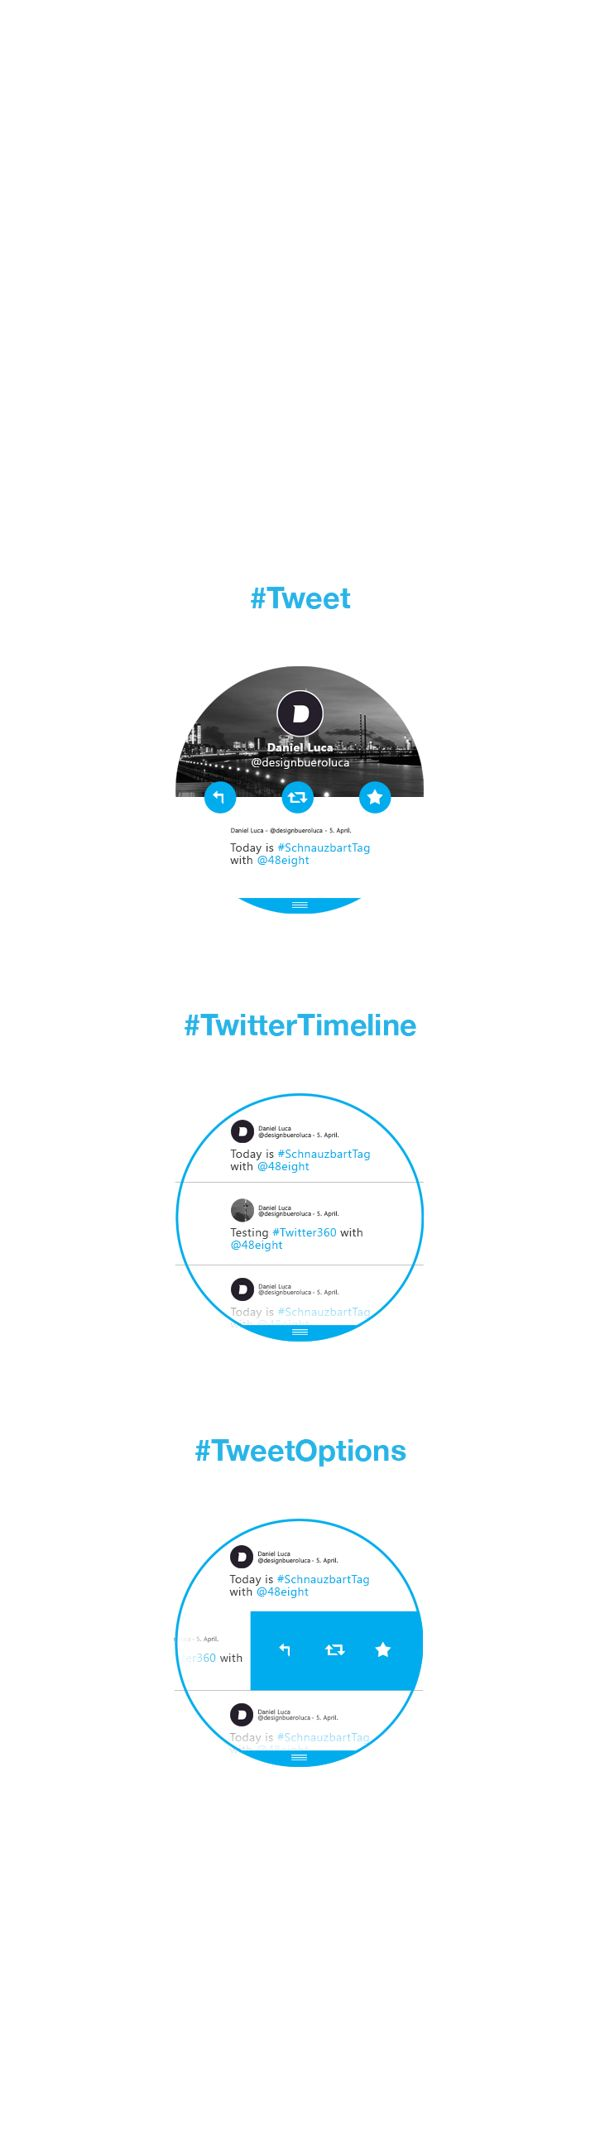 #twitter360 - Twitter for Moto360 (Concept) on Behance